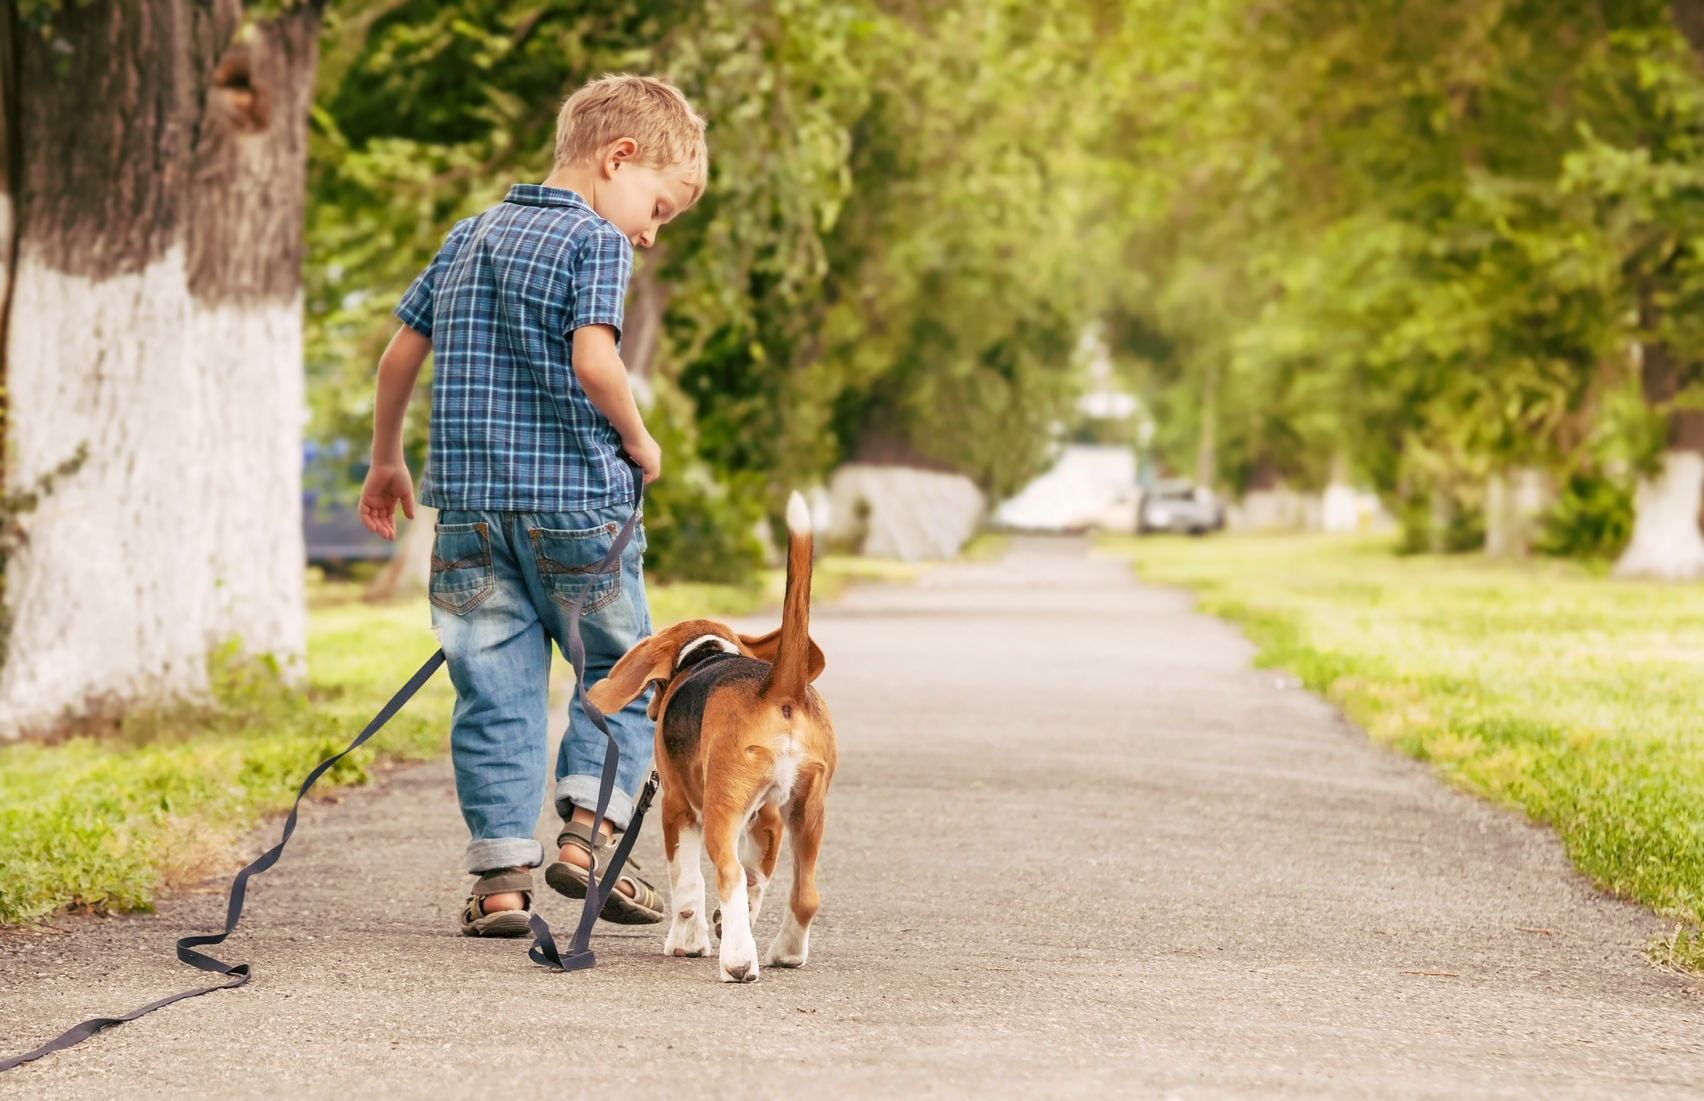 How To Make Your Dog Walk With You